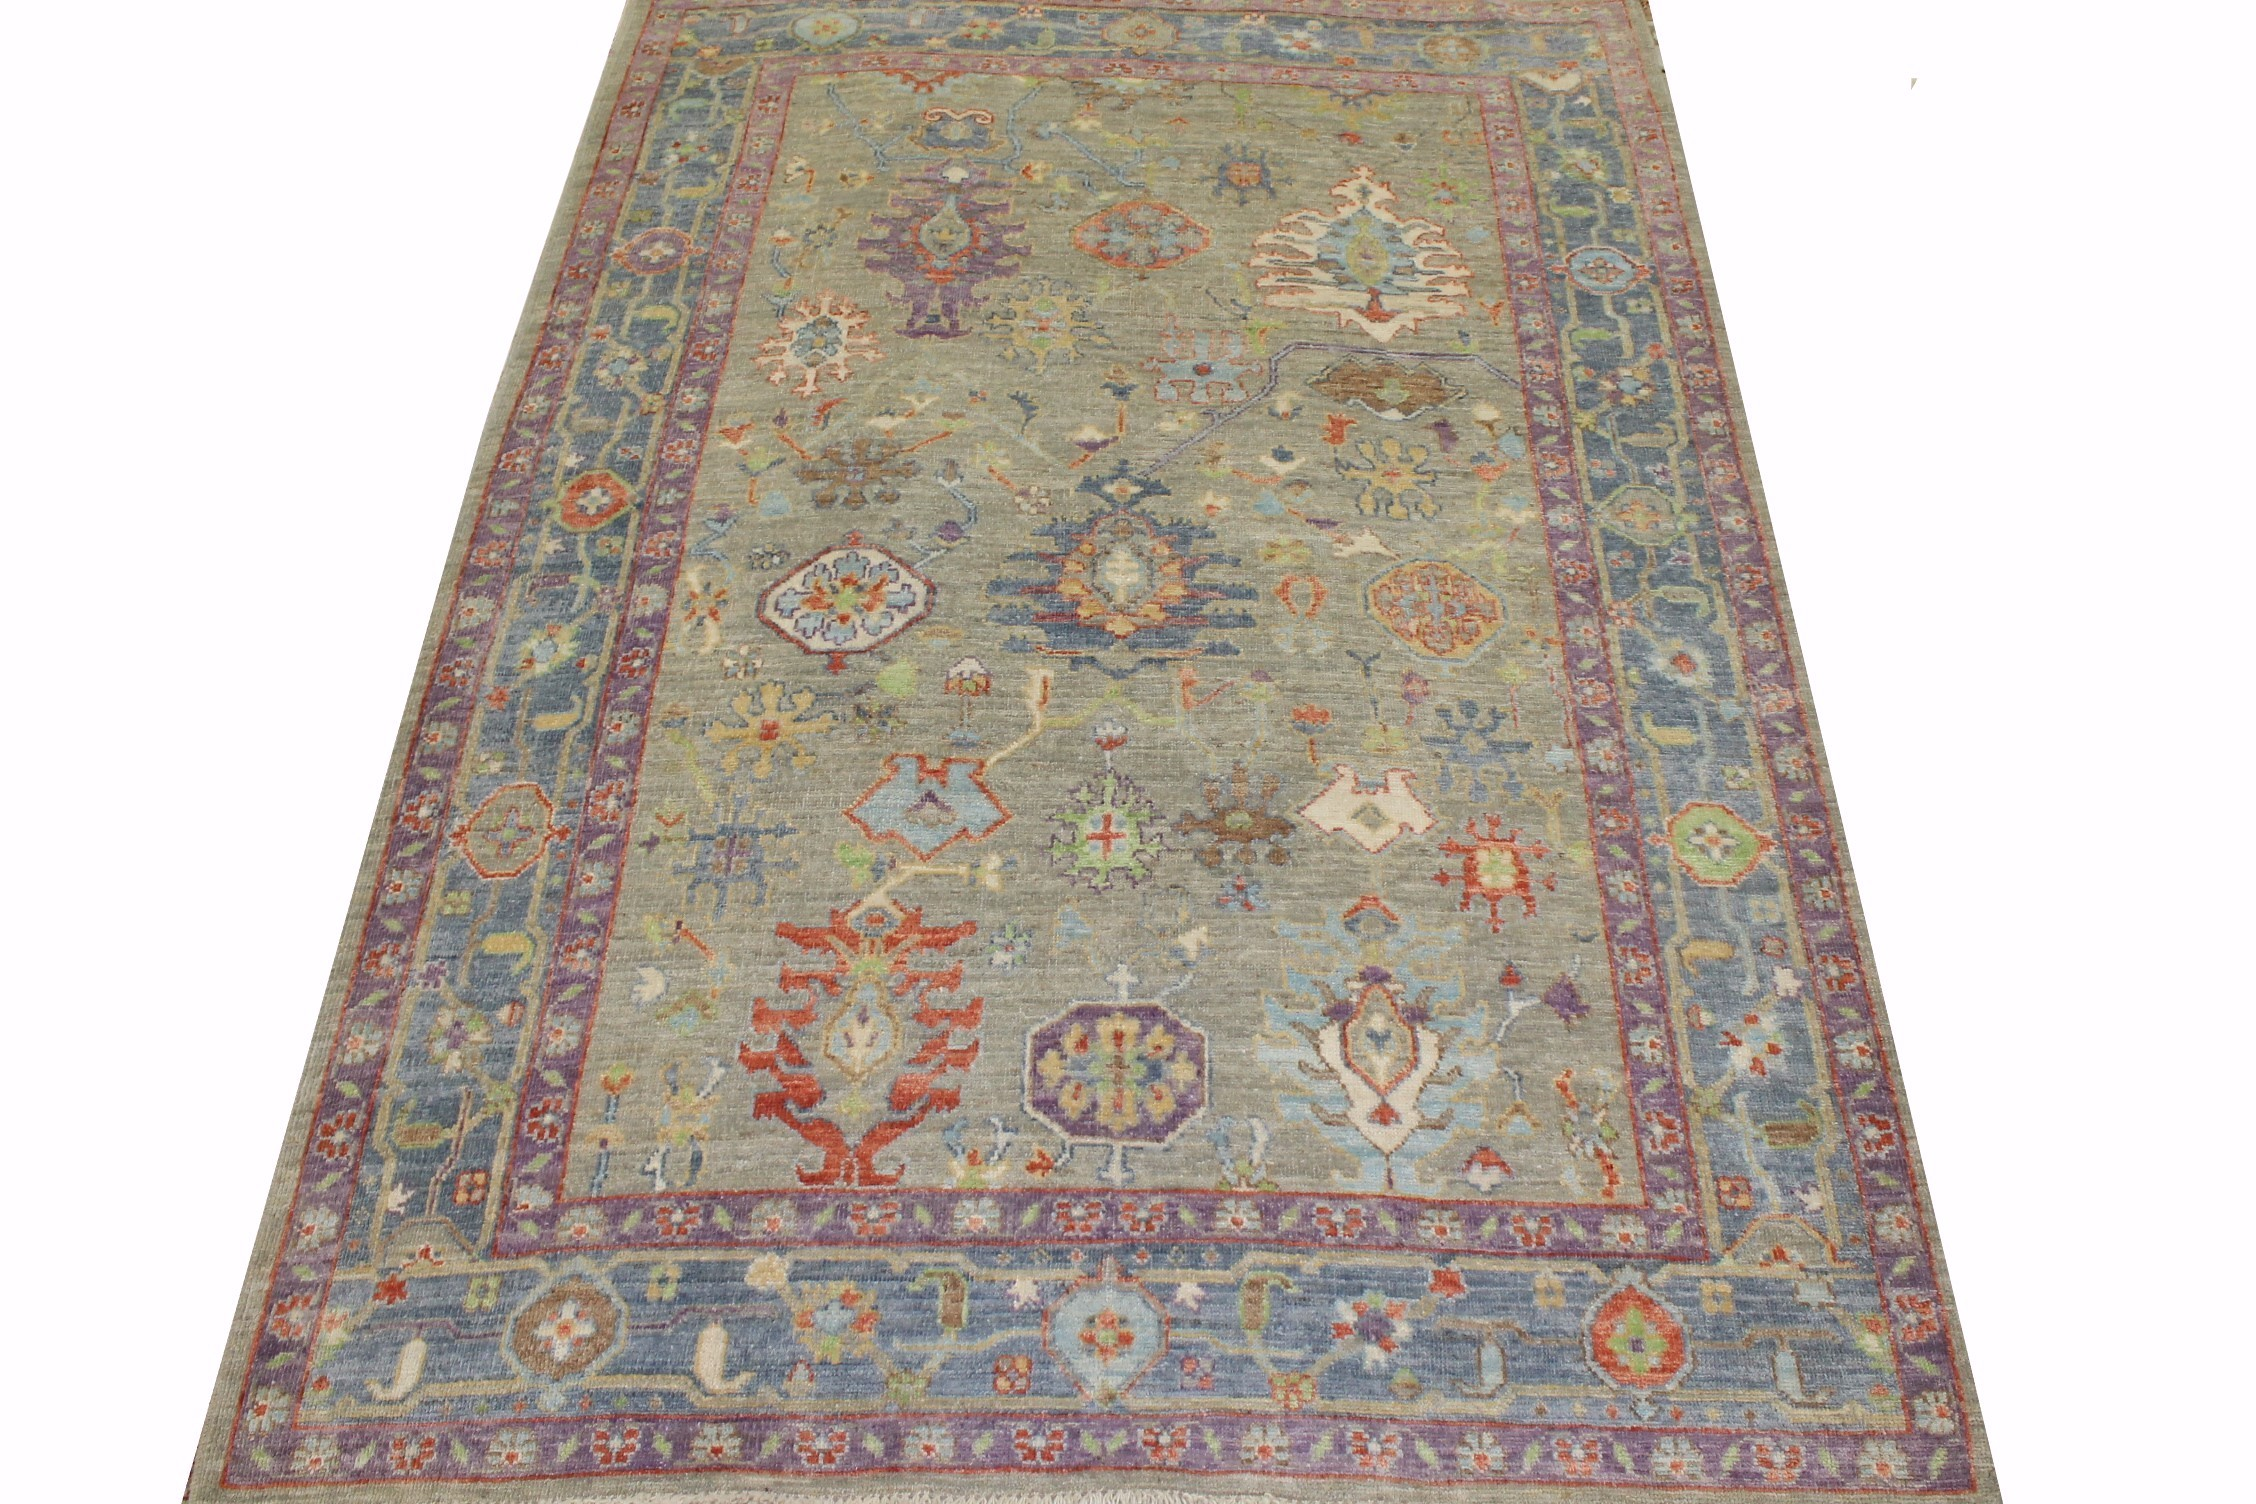 6x9 Oushak Hand Knotted Wool Area Rug - MR023372